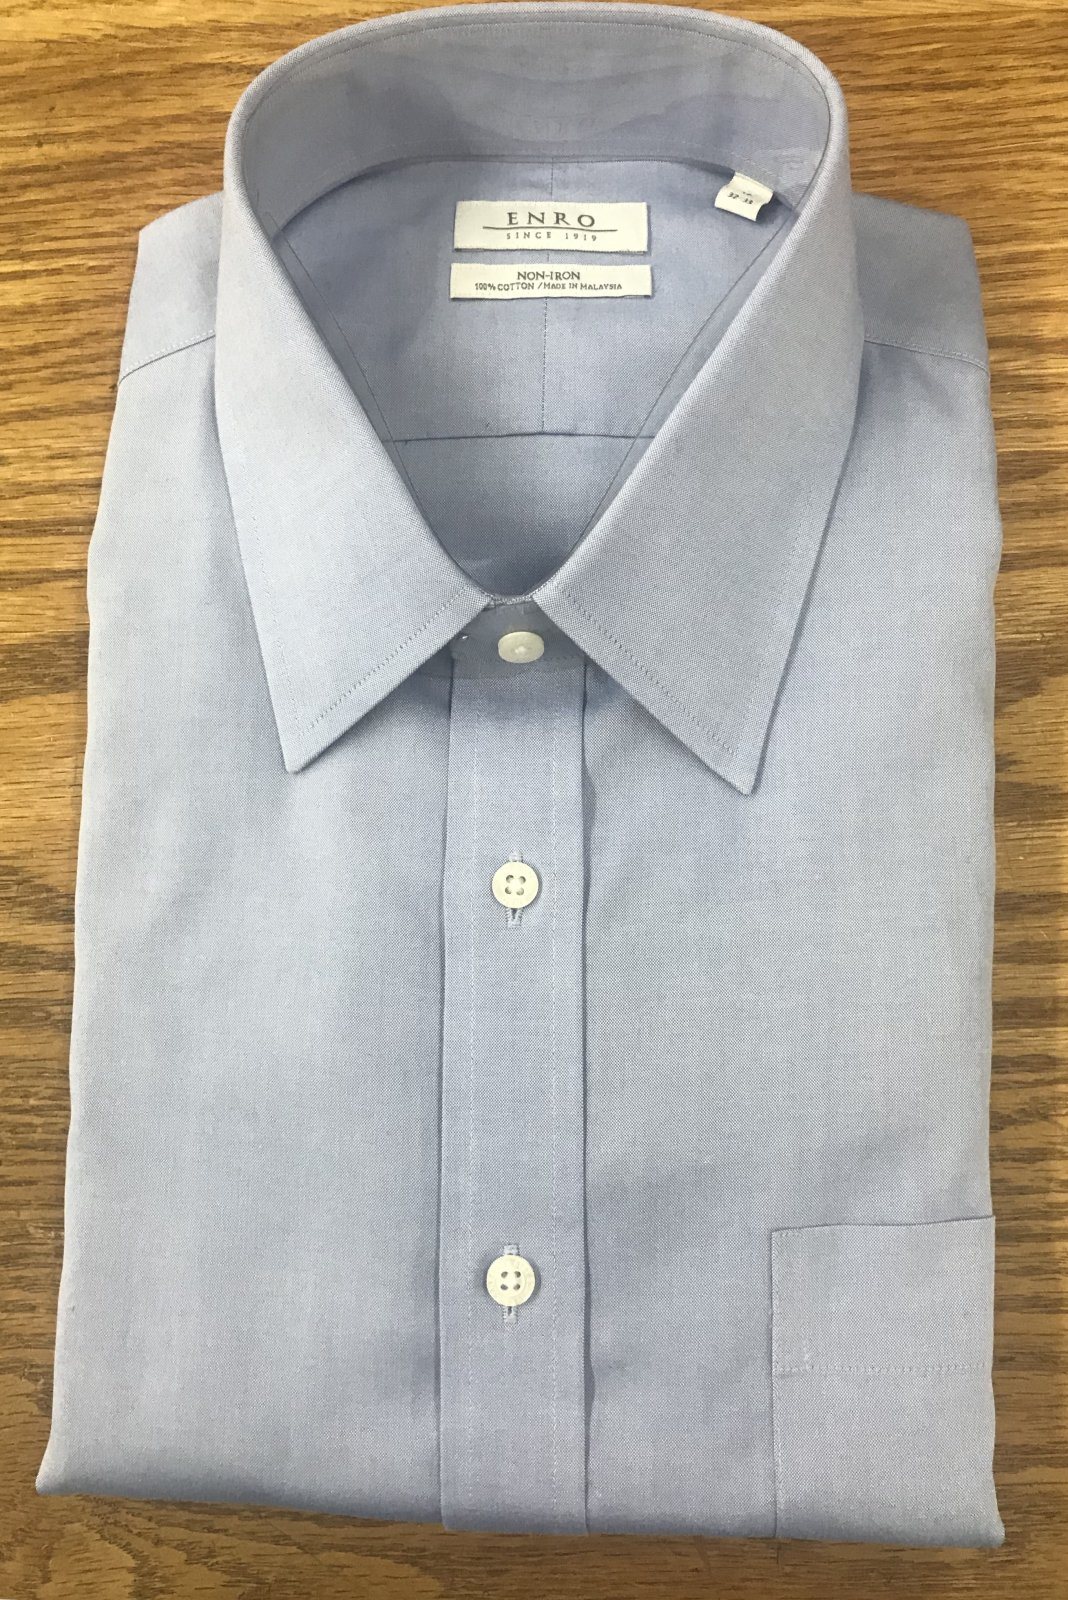 Enro LS Dress Shirt Tall